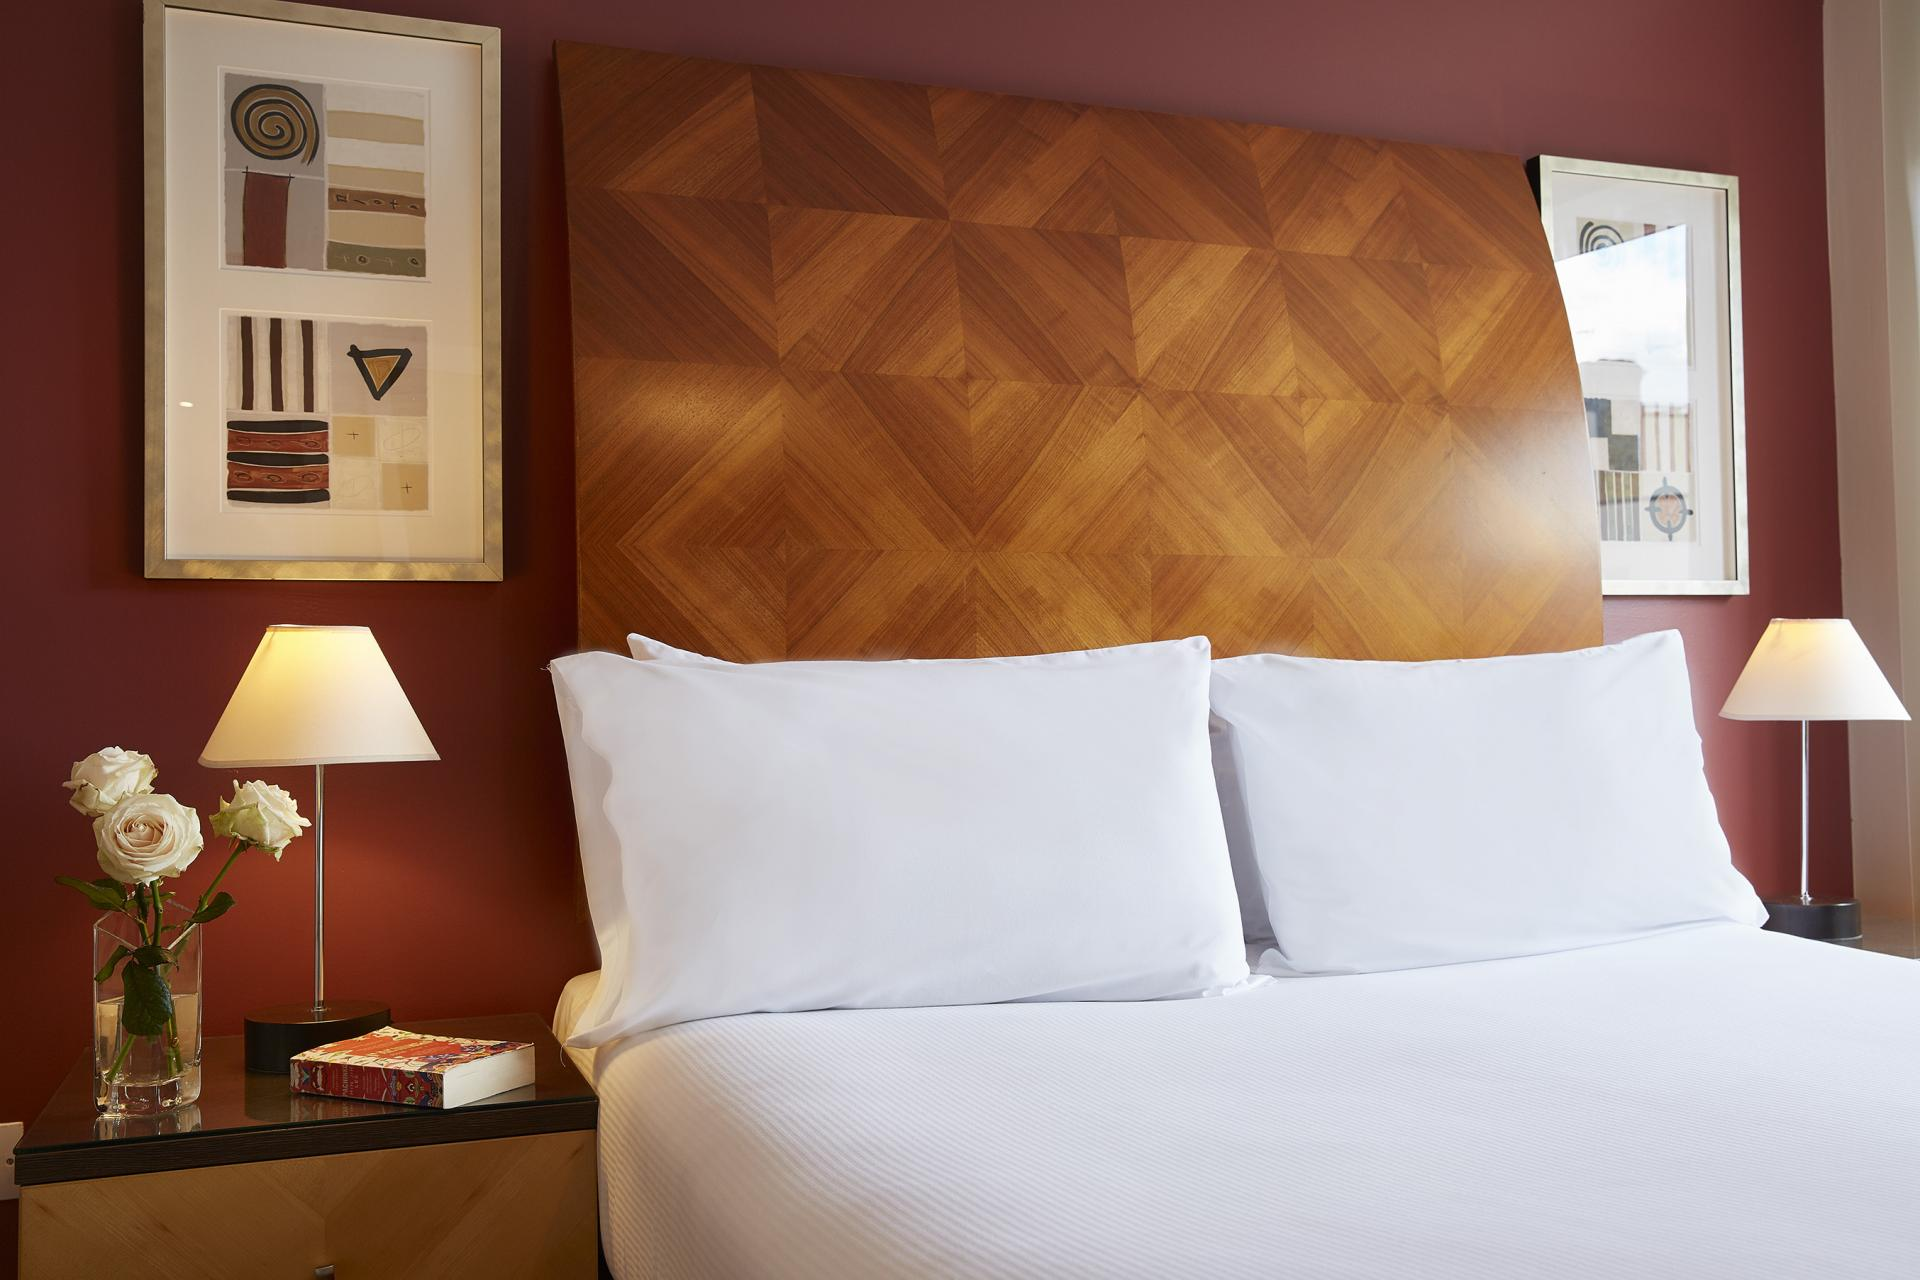 Bed at Limehouse Apartments, Limehouse, London - Citybase Apartments